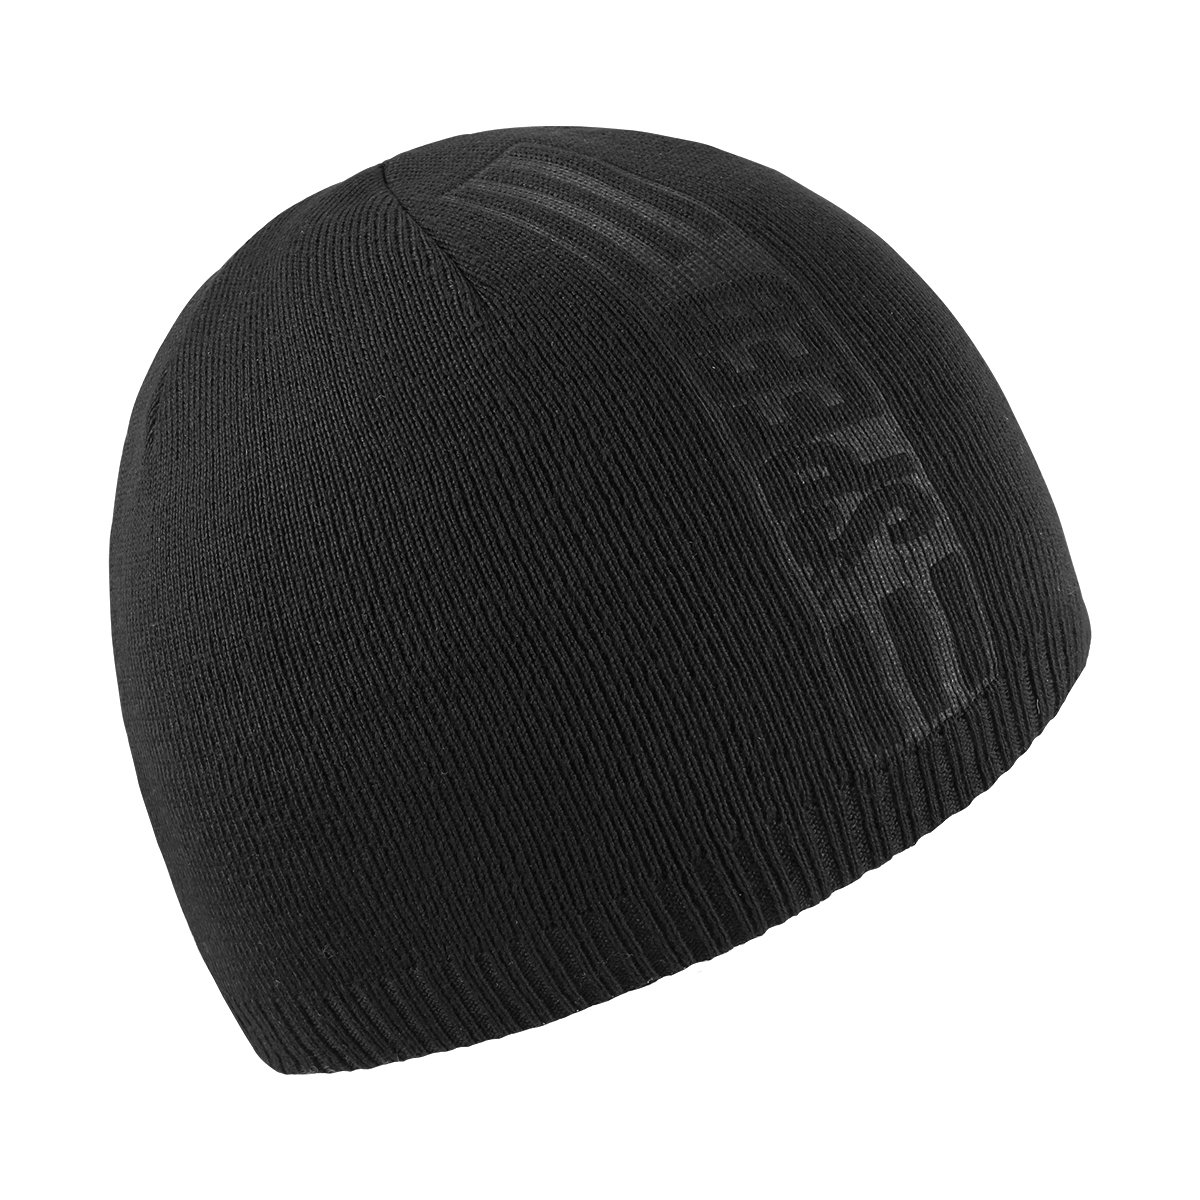 e42d9535165 ... Winter Hats Wool Warm Plain Skull Cuff Toboggan Knitting Watch Cap.  Wholesale Price 11.89. Bodvera is the Professional company serving men and  women who ...